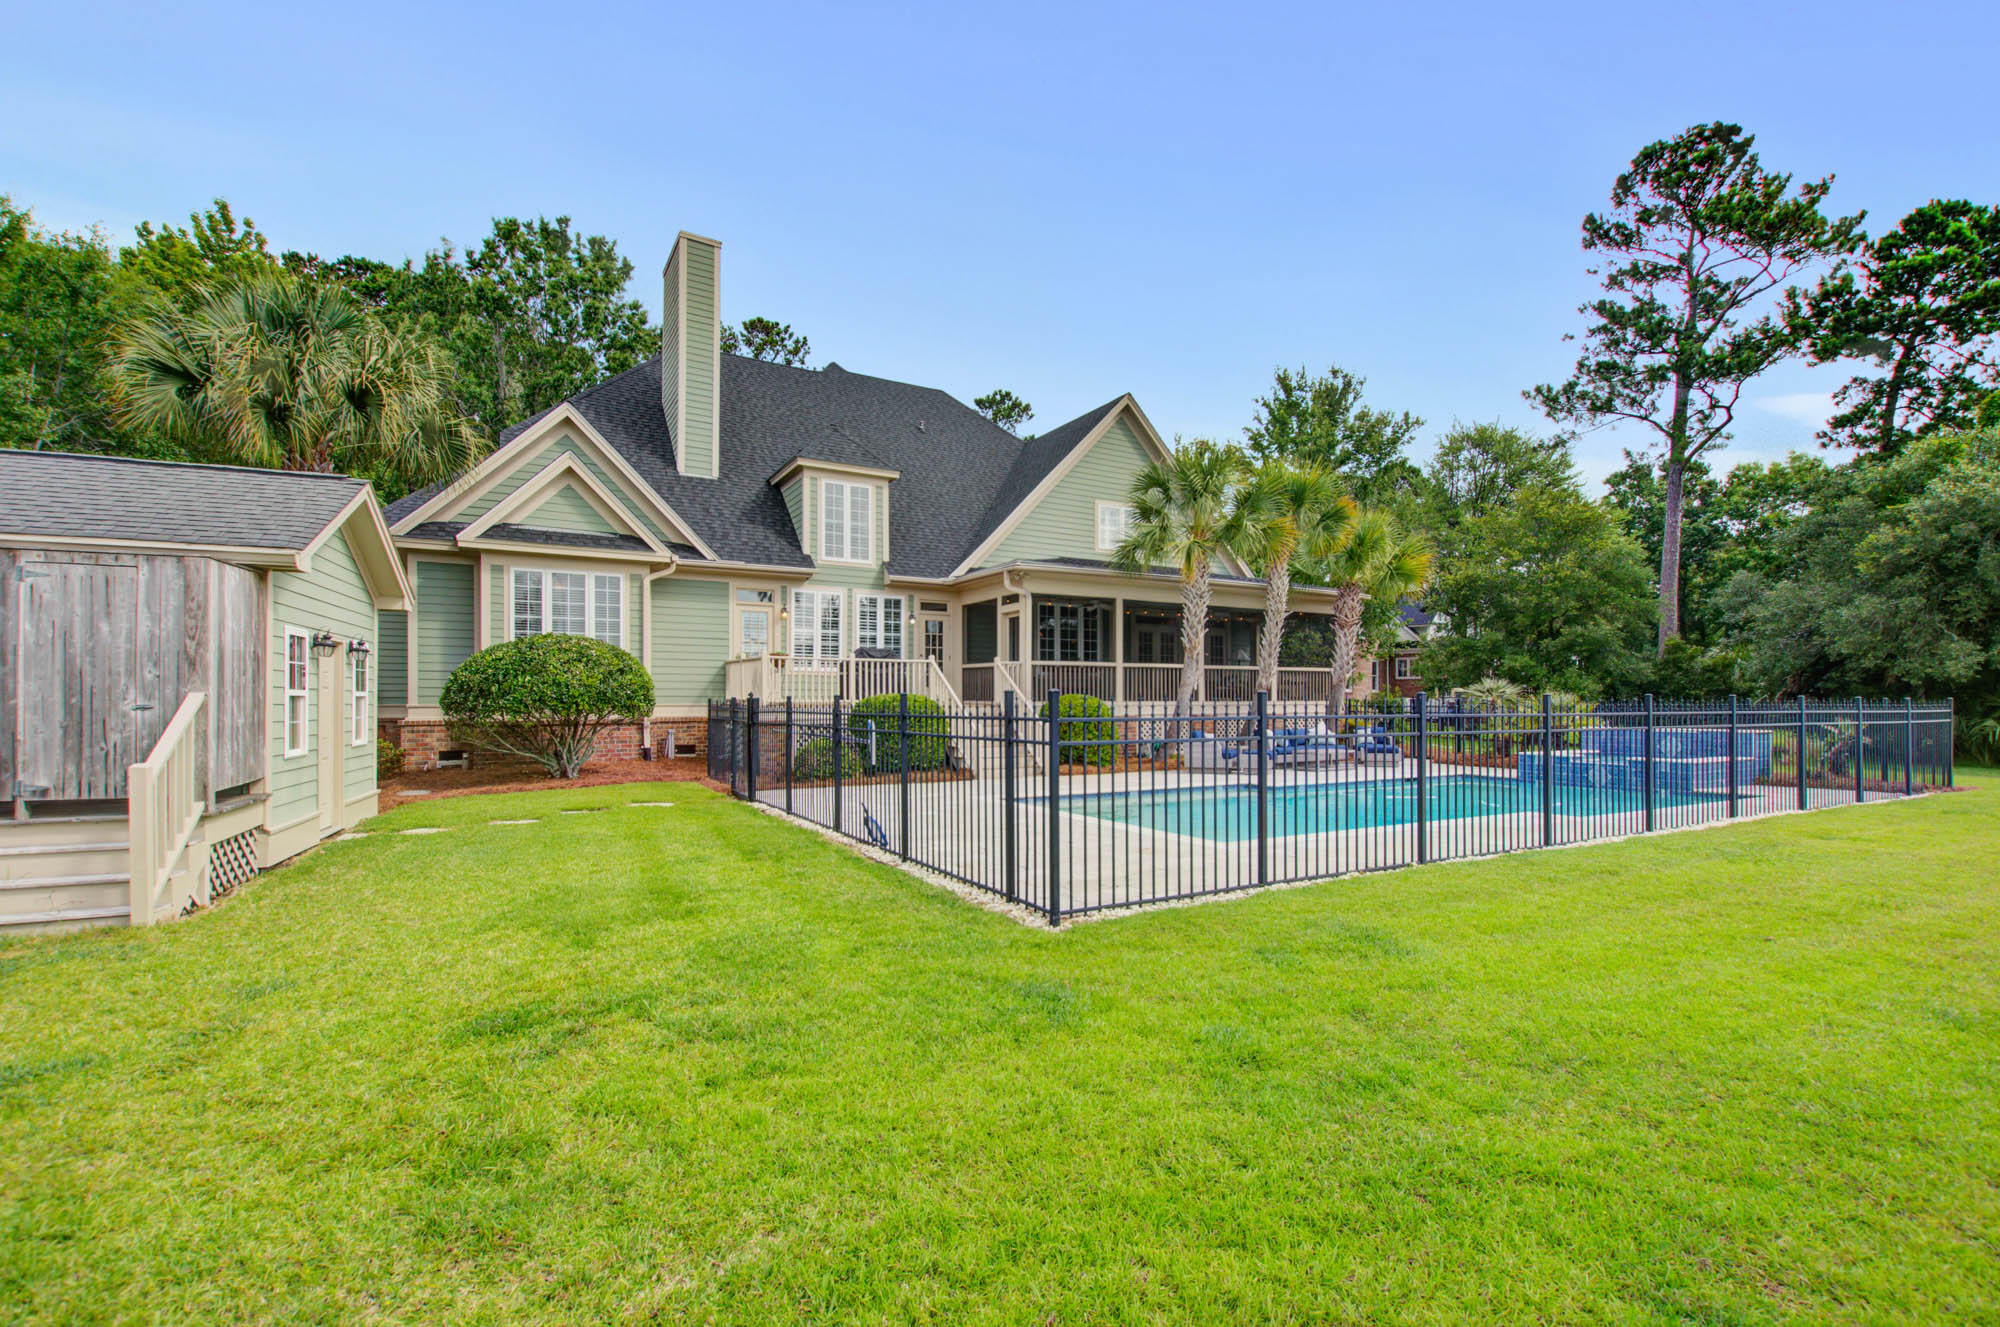 Dunes West Homes For Sale - 2069 Shell Ring, Mount Pleasant, SC - 16